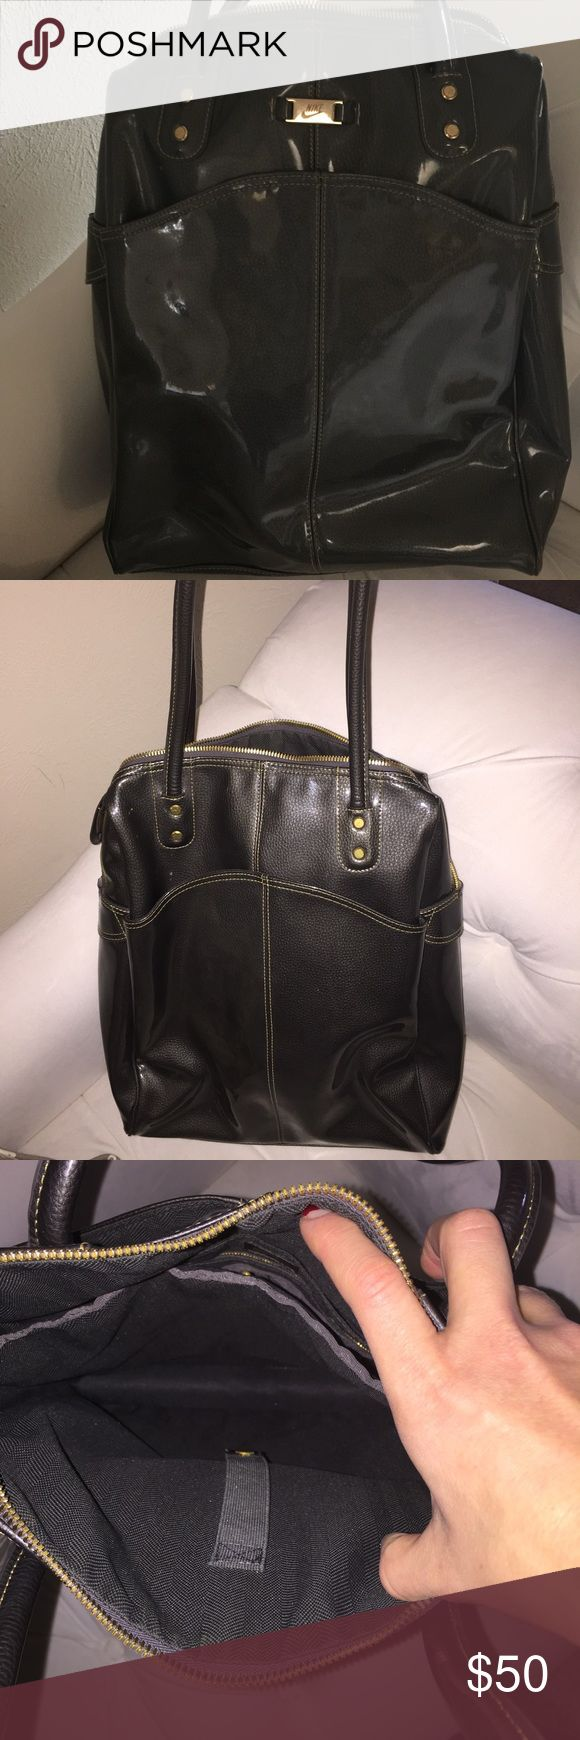 Nike shoulder bag. Great new condition!! Patent leather. Laptop slot. Long shoulder straps for easy carry. Front/easy access pocket on BOTH sides! Great for a carry-on bag or a vinyasa to vino after-work trip! Nike Bags